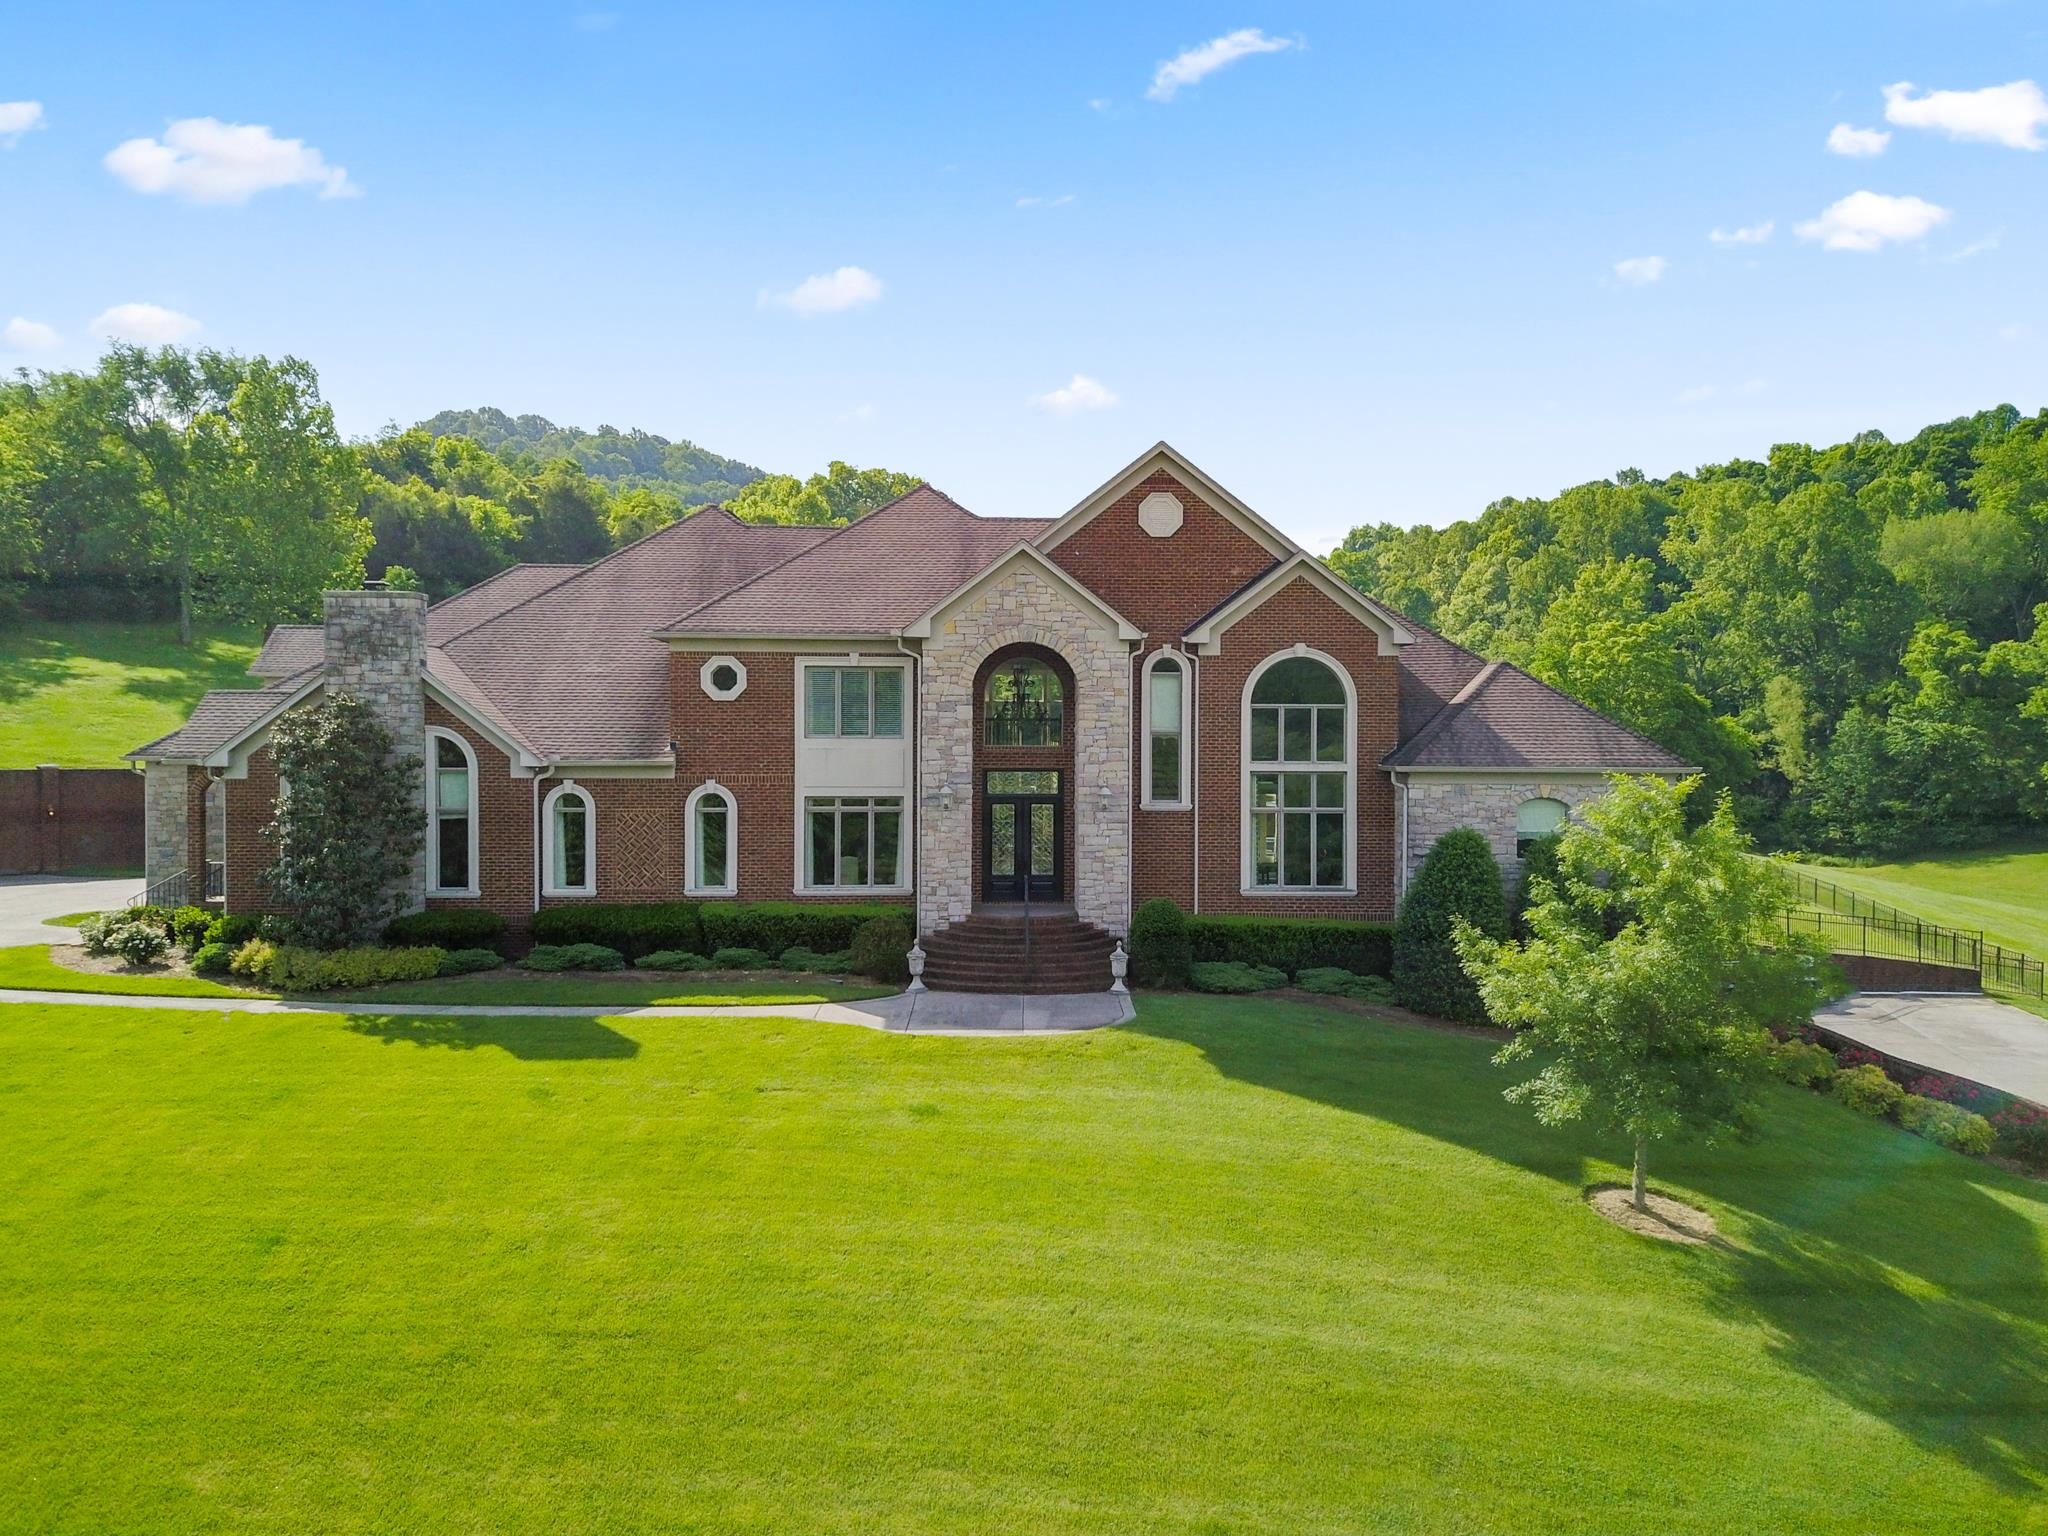 4741 Brick Church Pike, Goodlettsville, TN 37072 - Goodlettsville, TN real estate listing